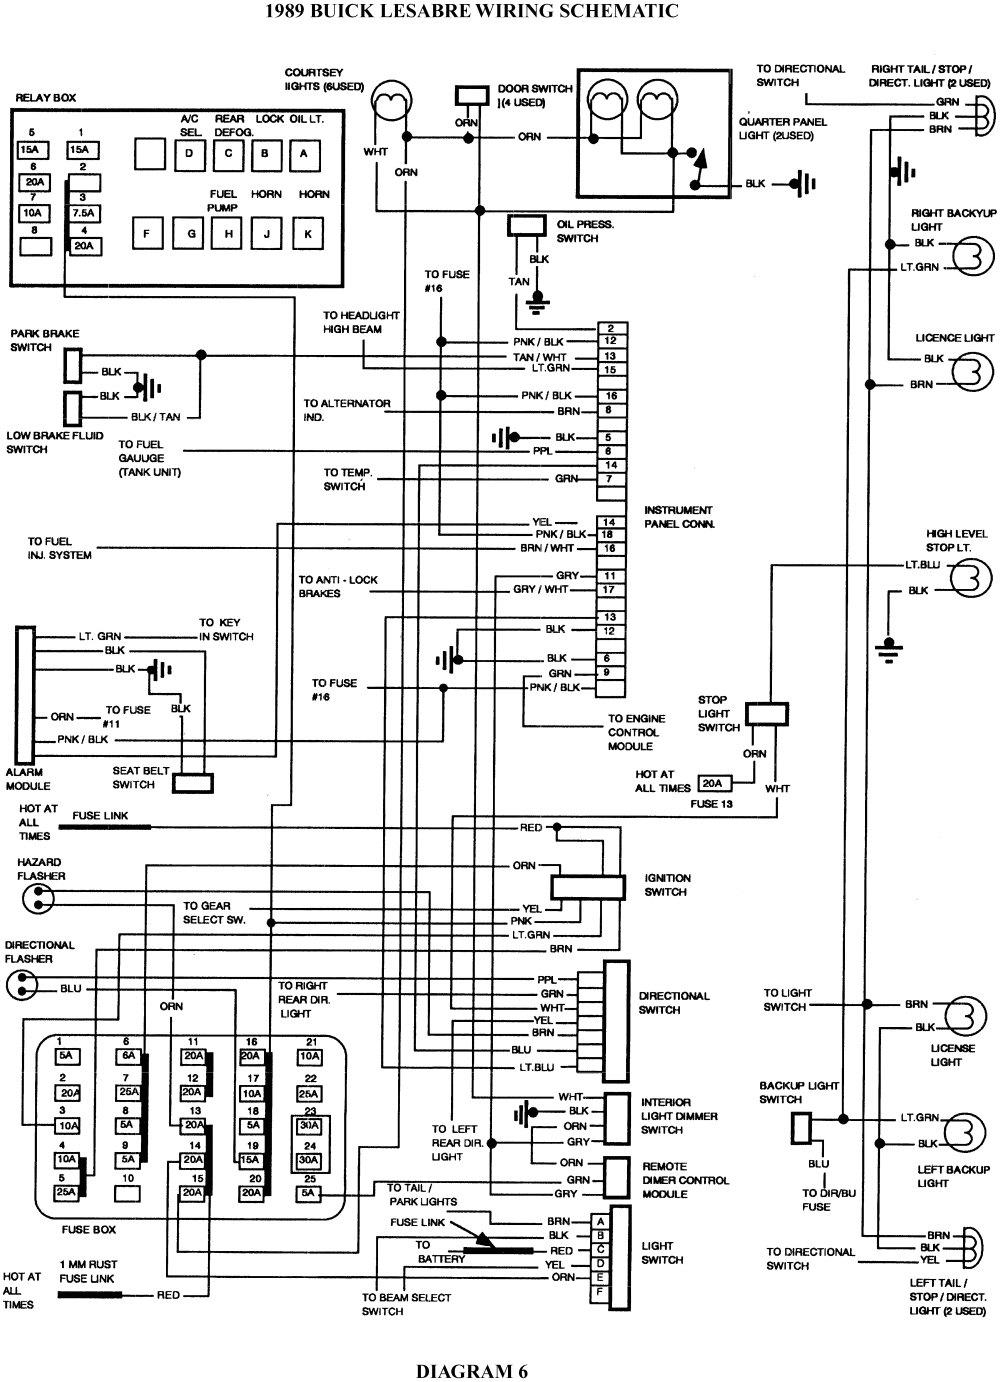 8 1989 buick lesabre wiring schematic